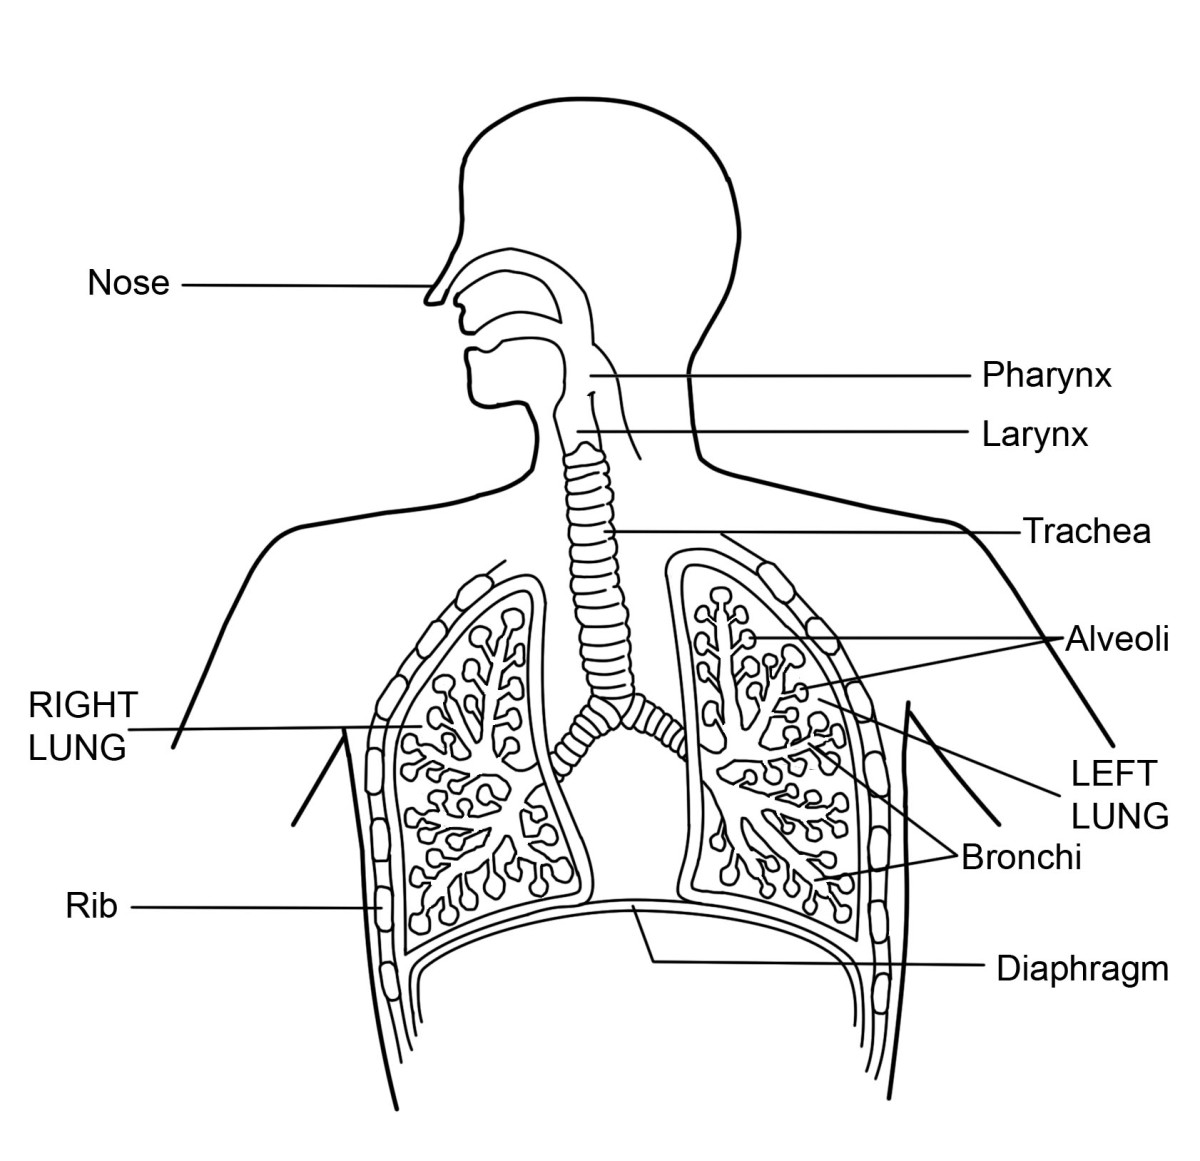 horse respiratory system diagram electric wiring for house unmasa dalha